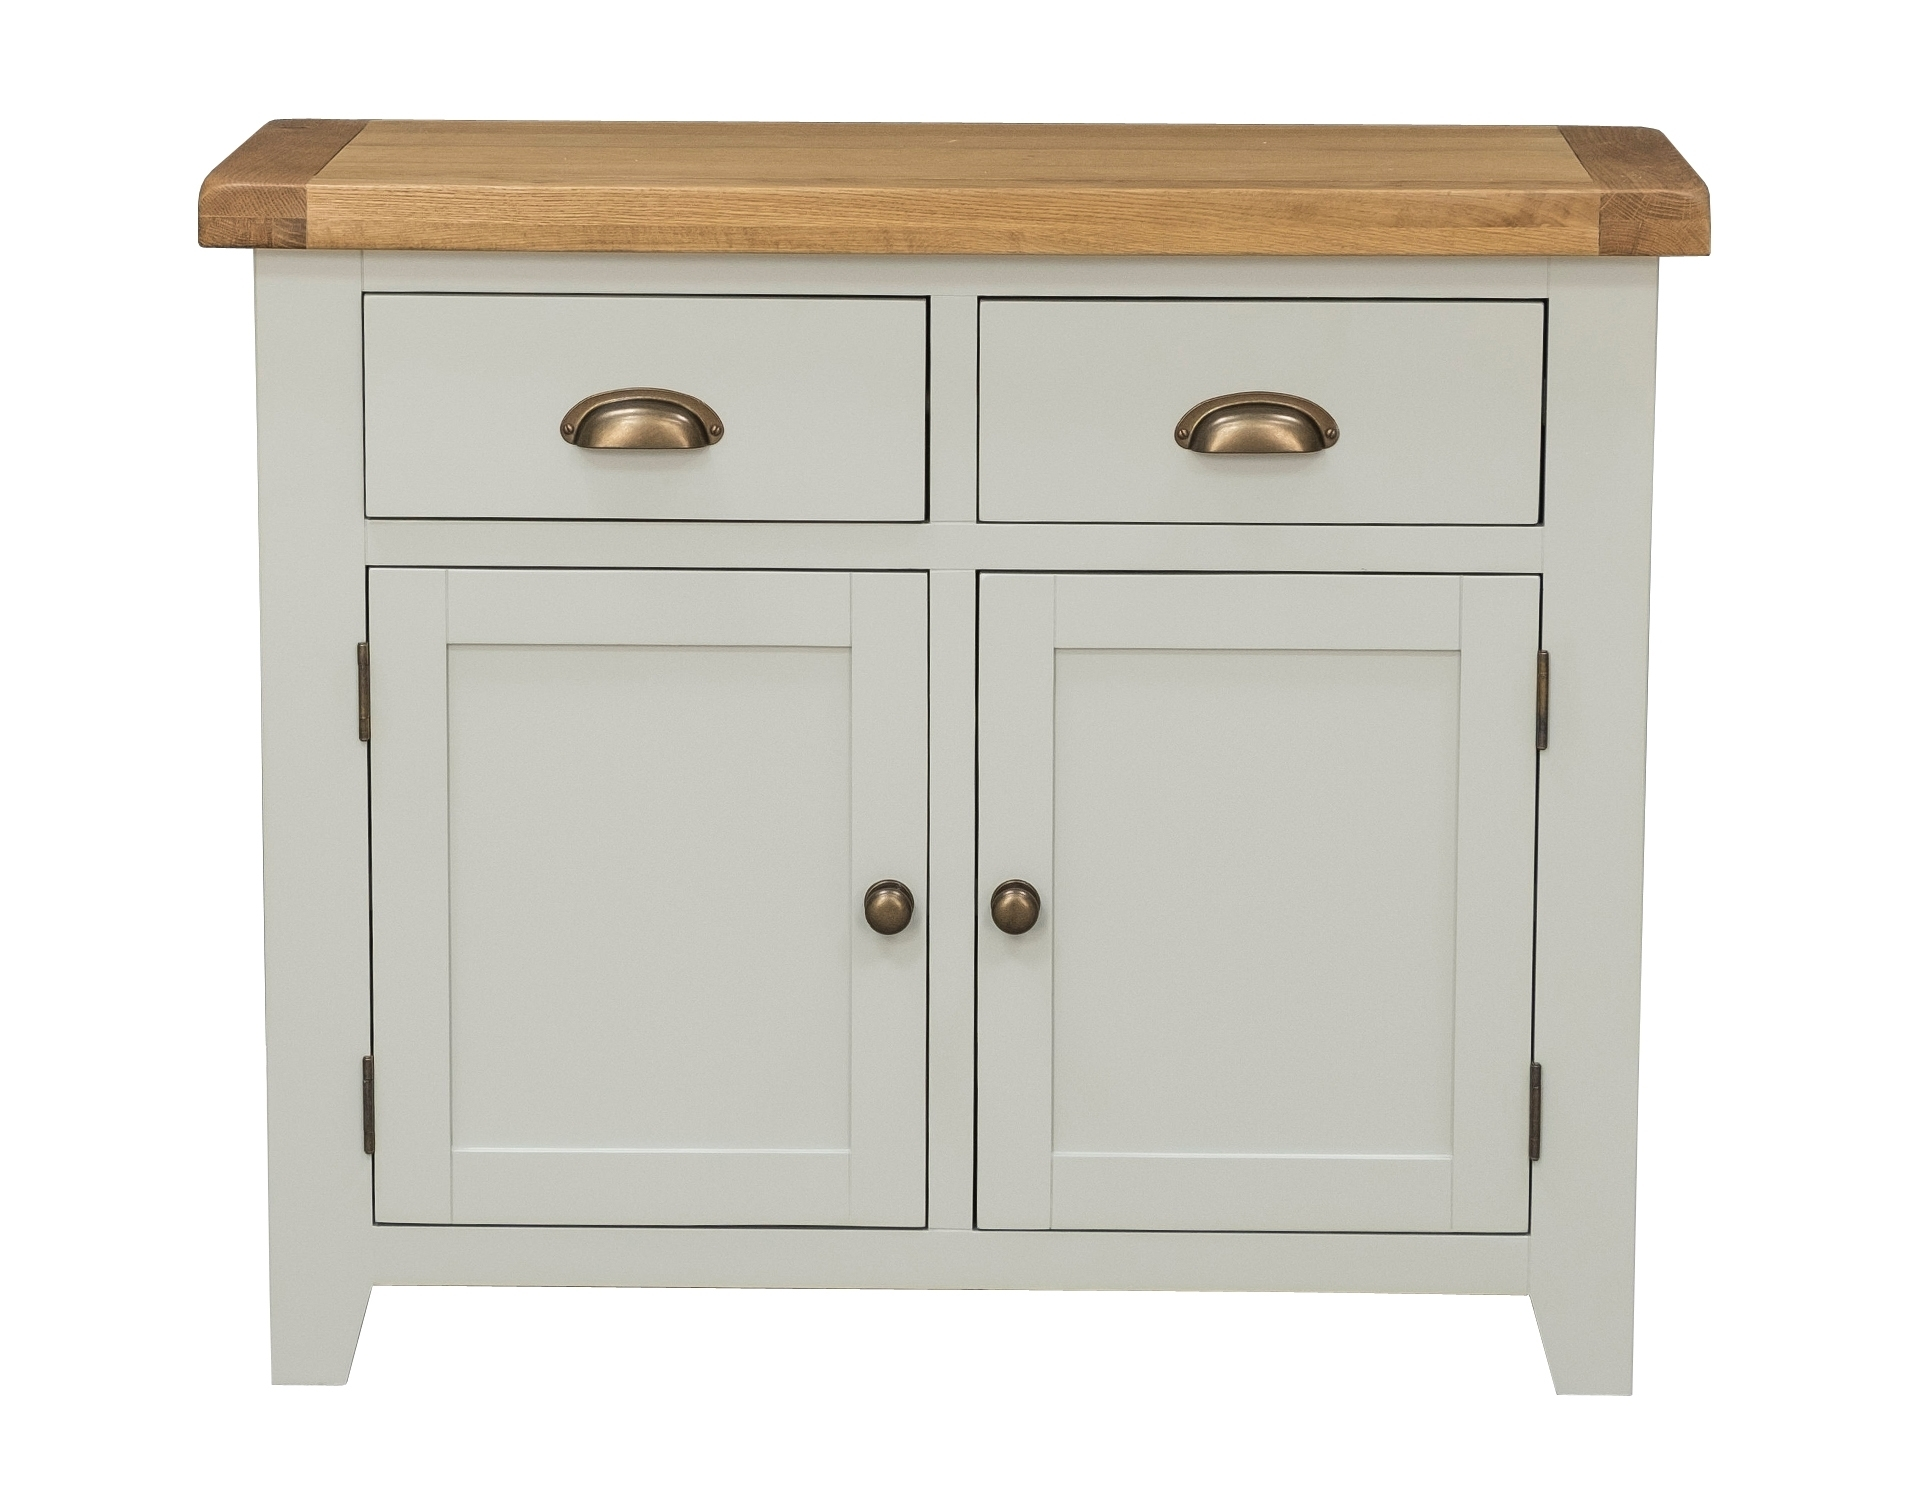 Sideboard 2 Door 2 Drawer - Grey Painted - Sideboards - Furniture World throughout Tobias 4 Door Sideboards (Image 16 of 30)